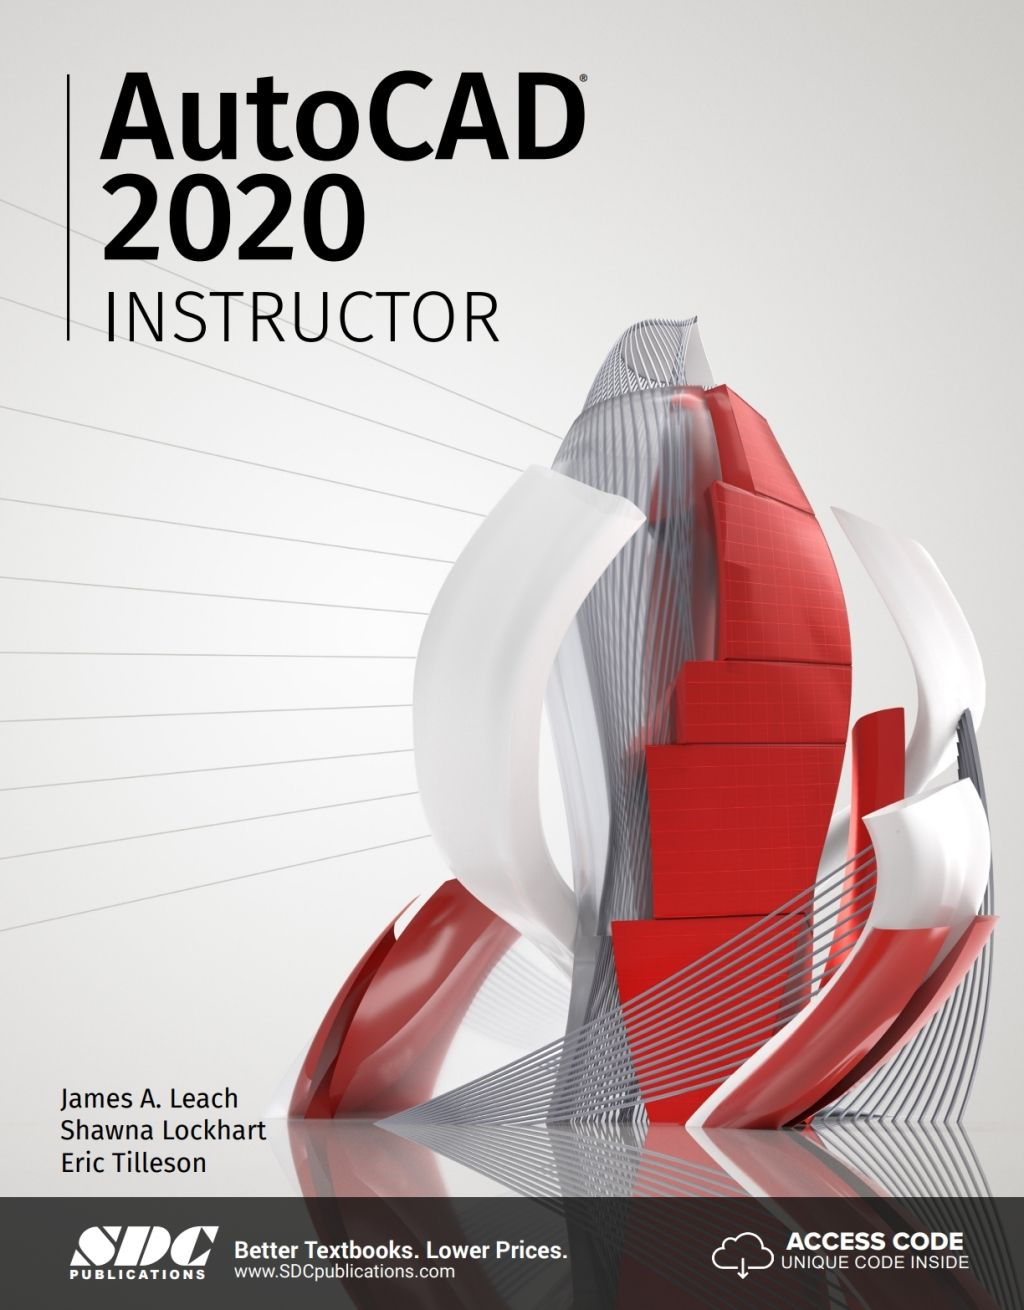 Autocad 2020 Instructor Ebook Courseware In 2020 Autocad Ebook Lockhart